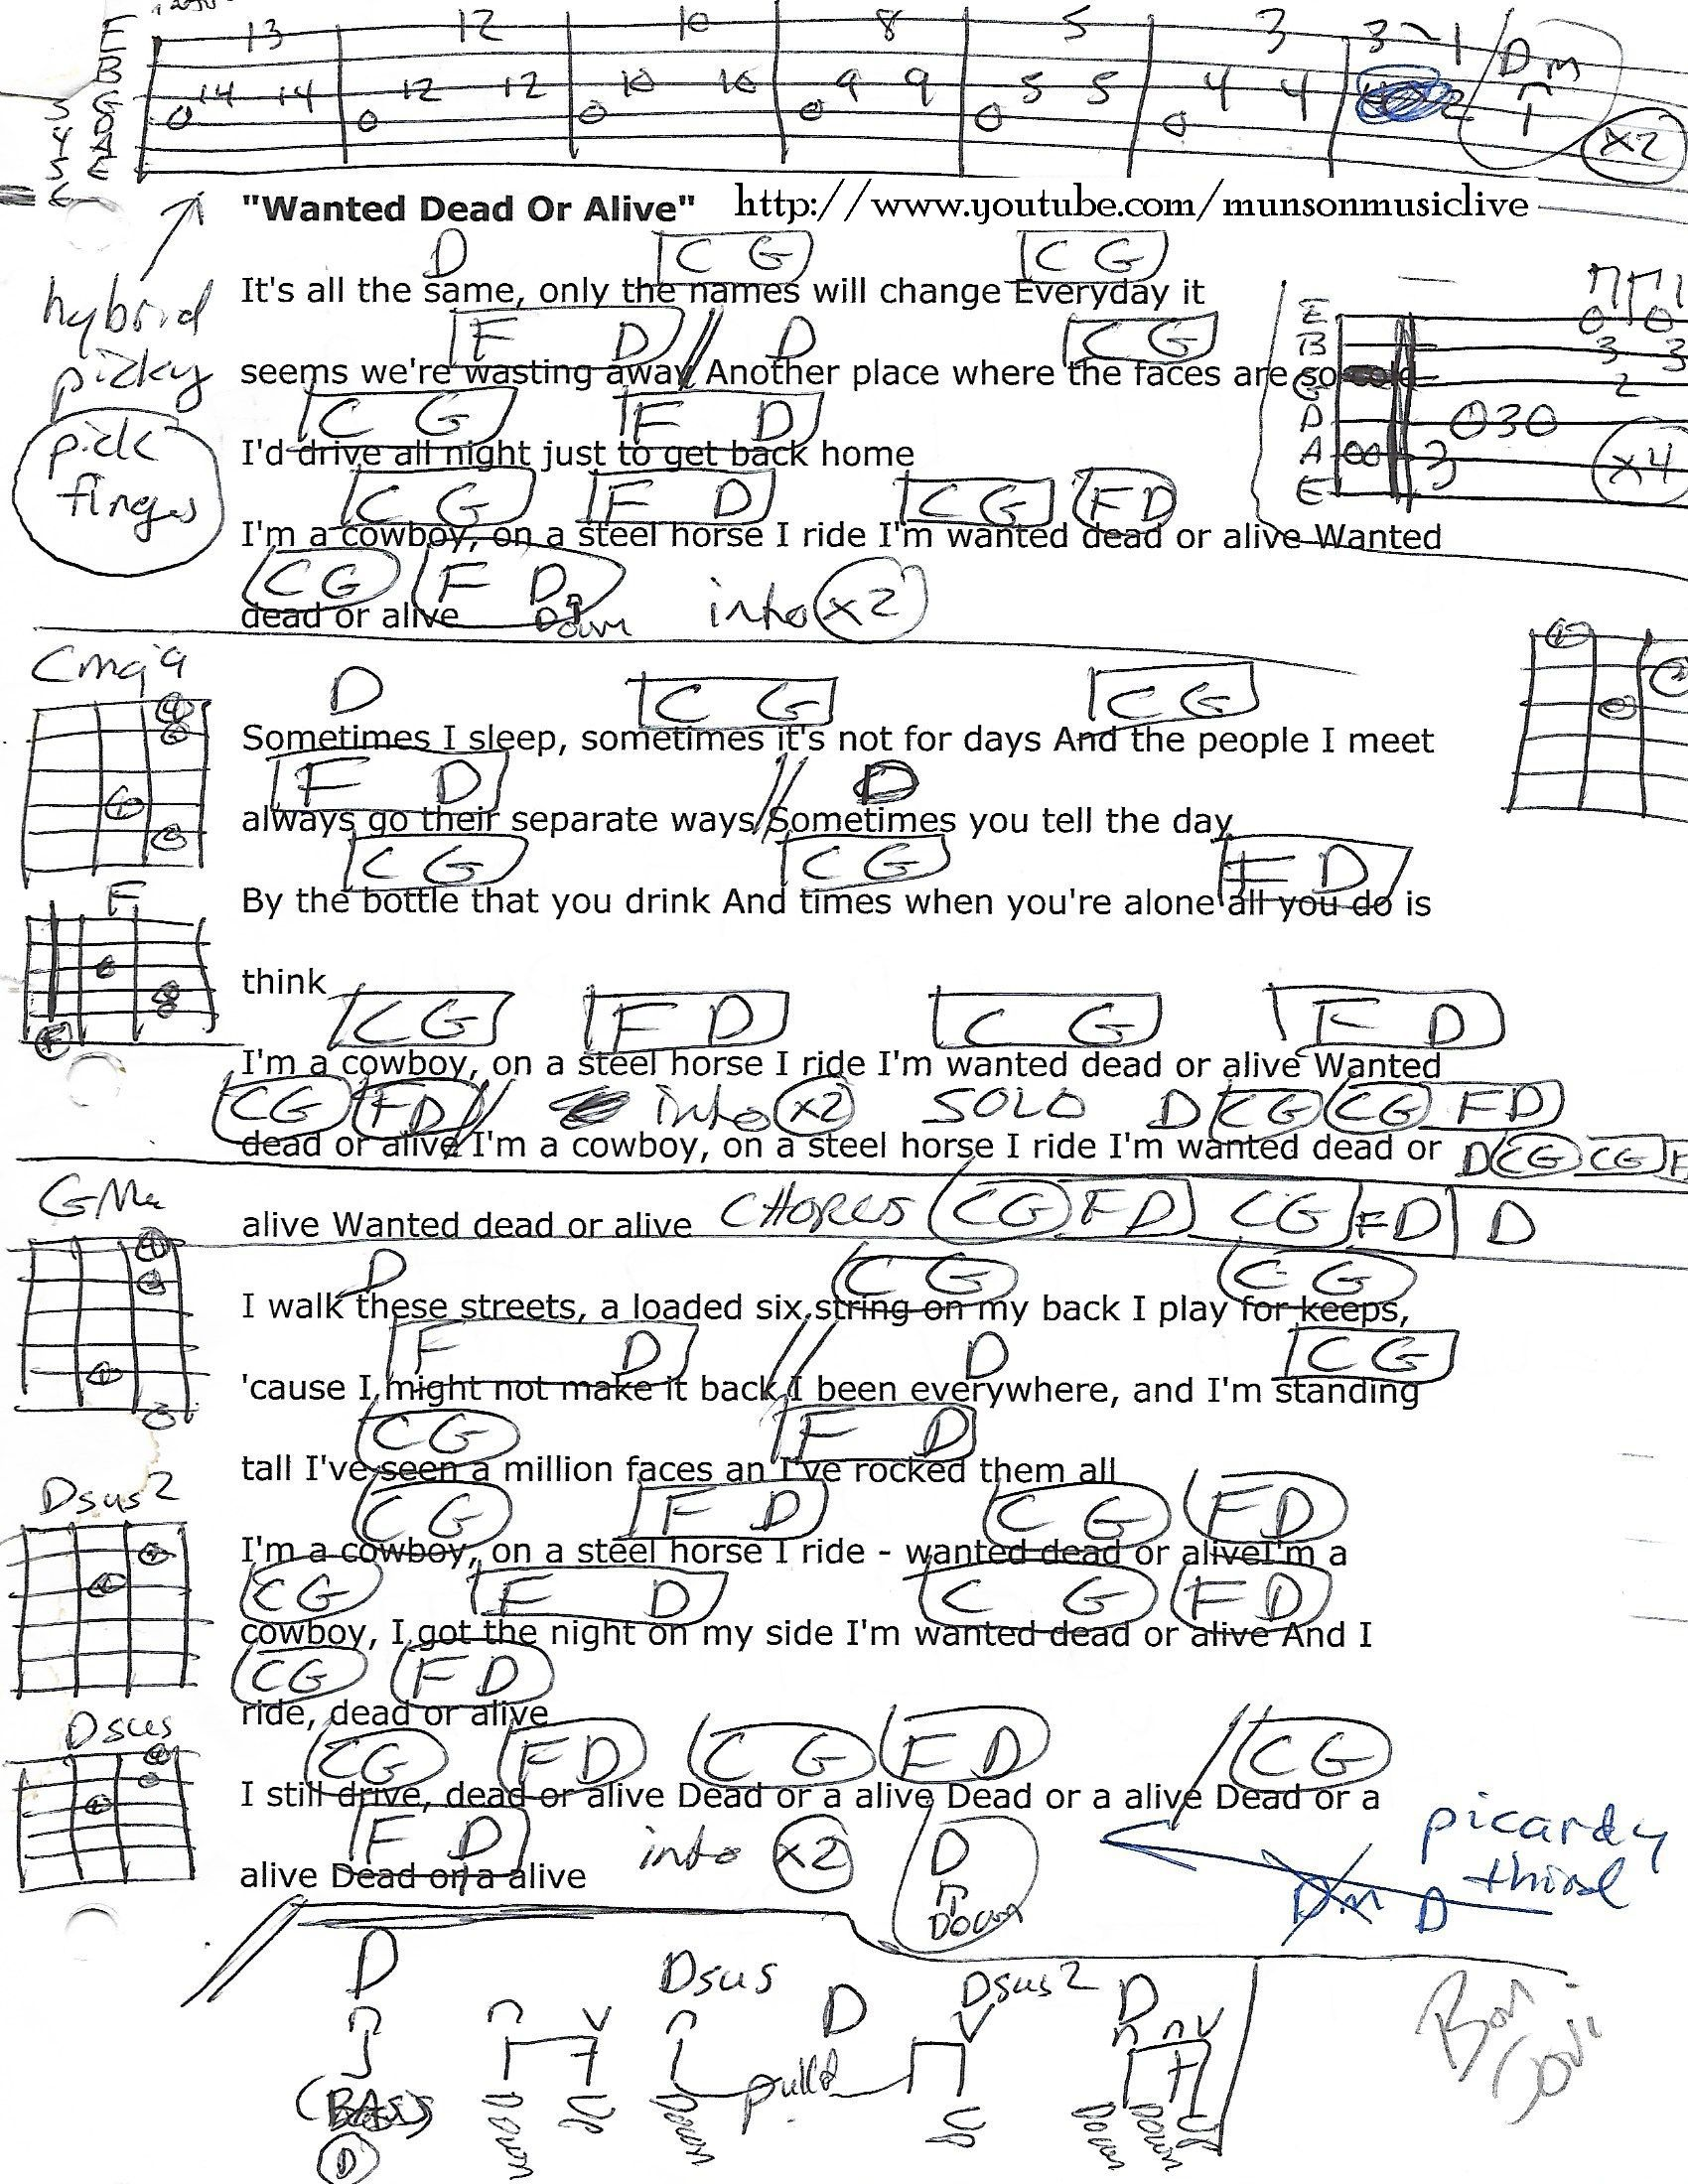 Wanted Dead Or Alive Lyrics And Chords : wanted, alive, lyrics, chords, Whitehouse, (lukew0414), Profile, Pinterest